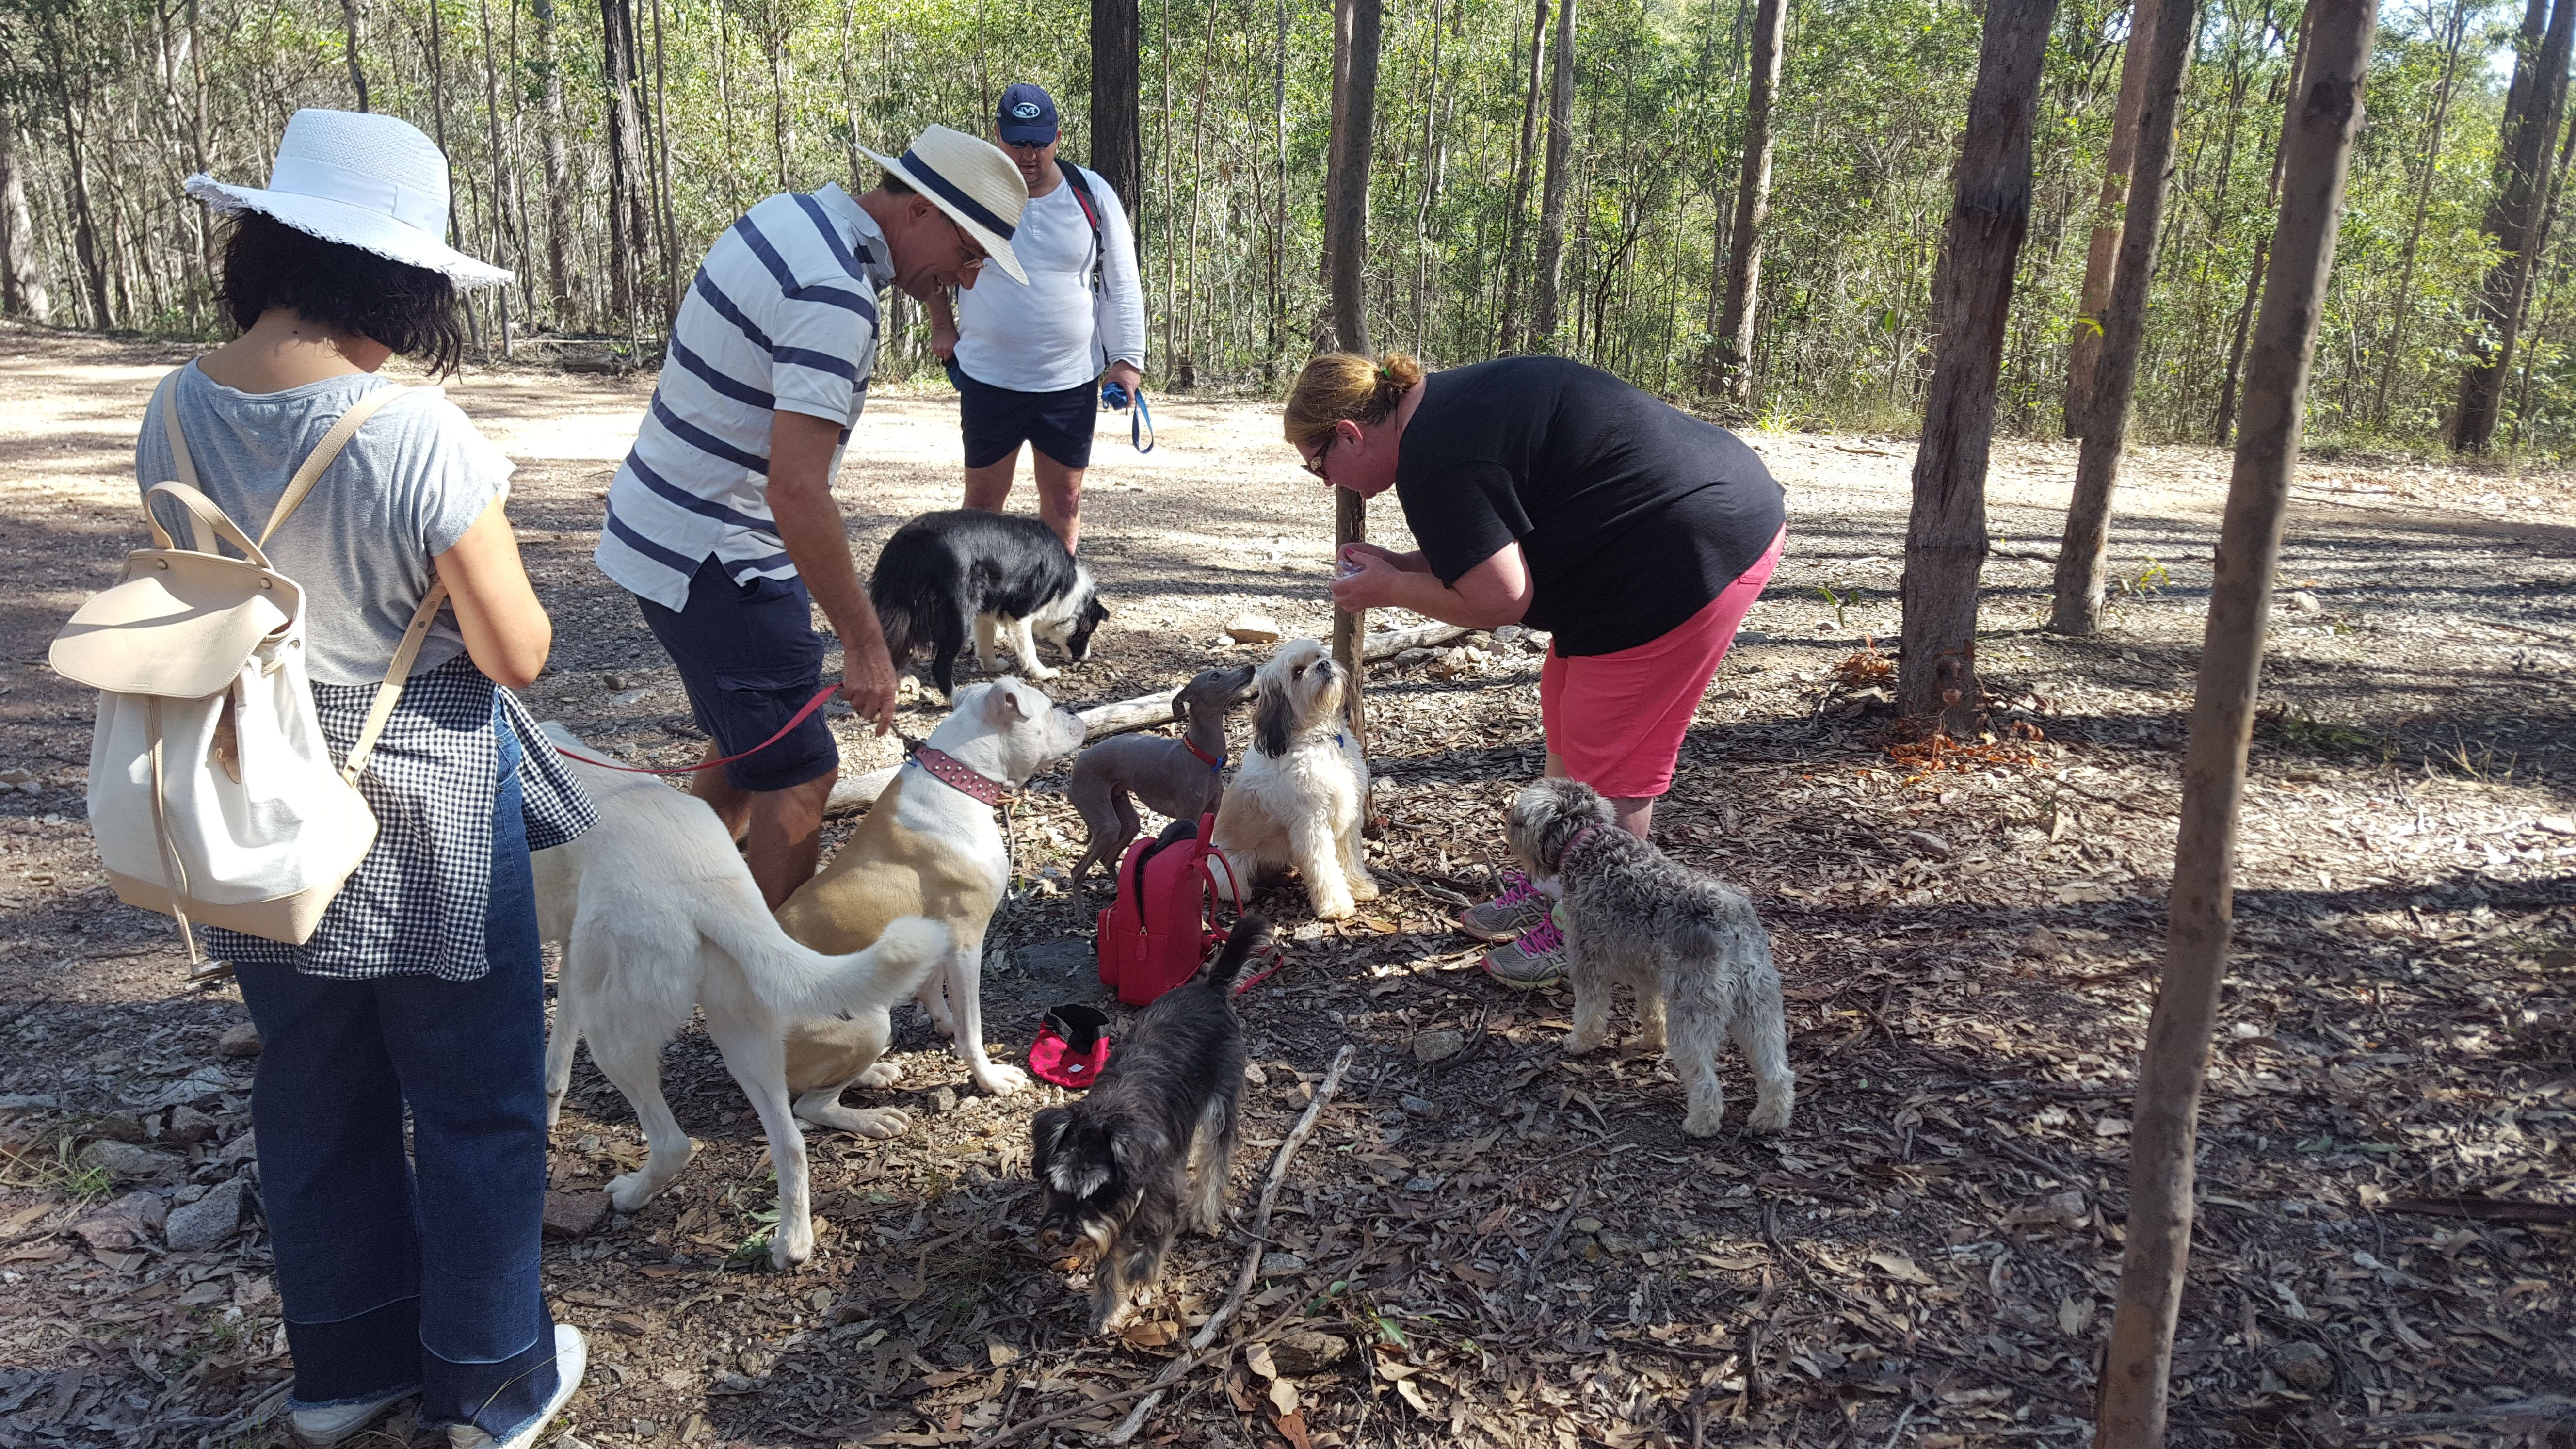 hiking with doggos and puppers - brisbane and gold coast